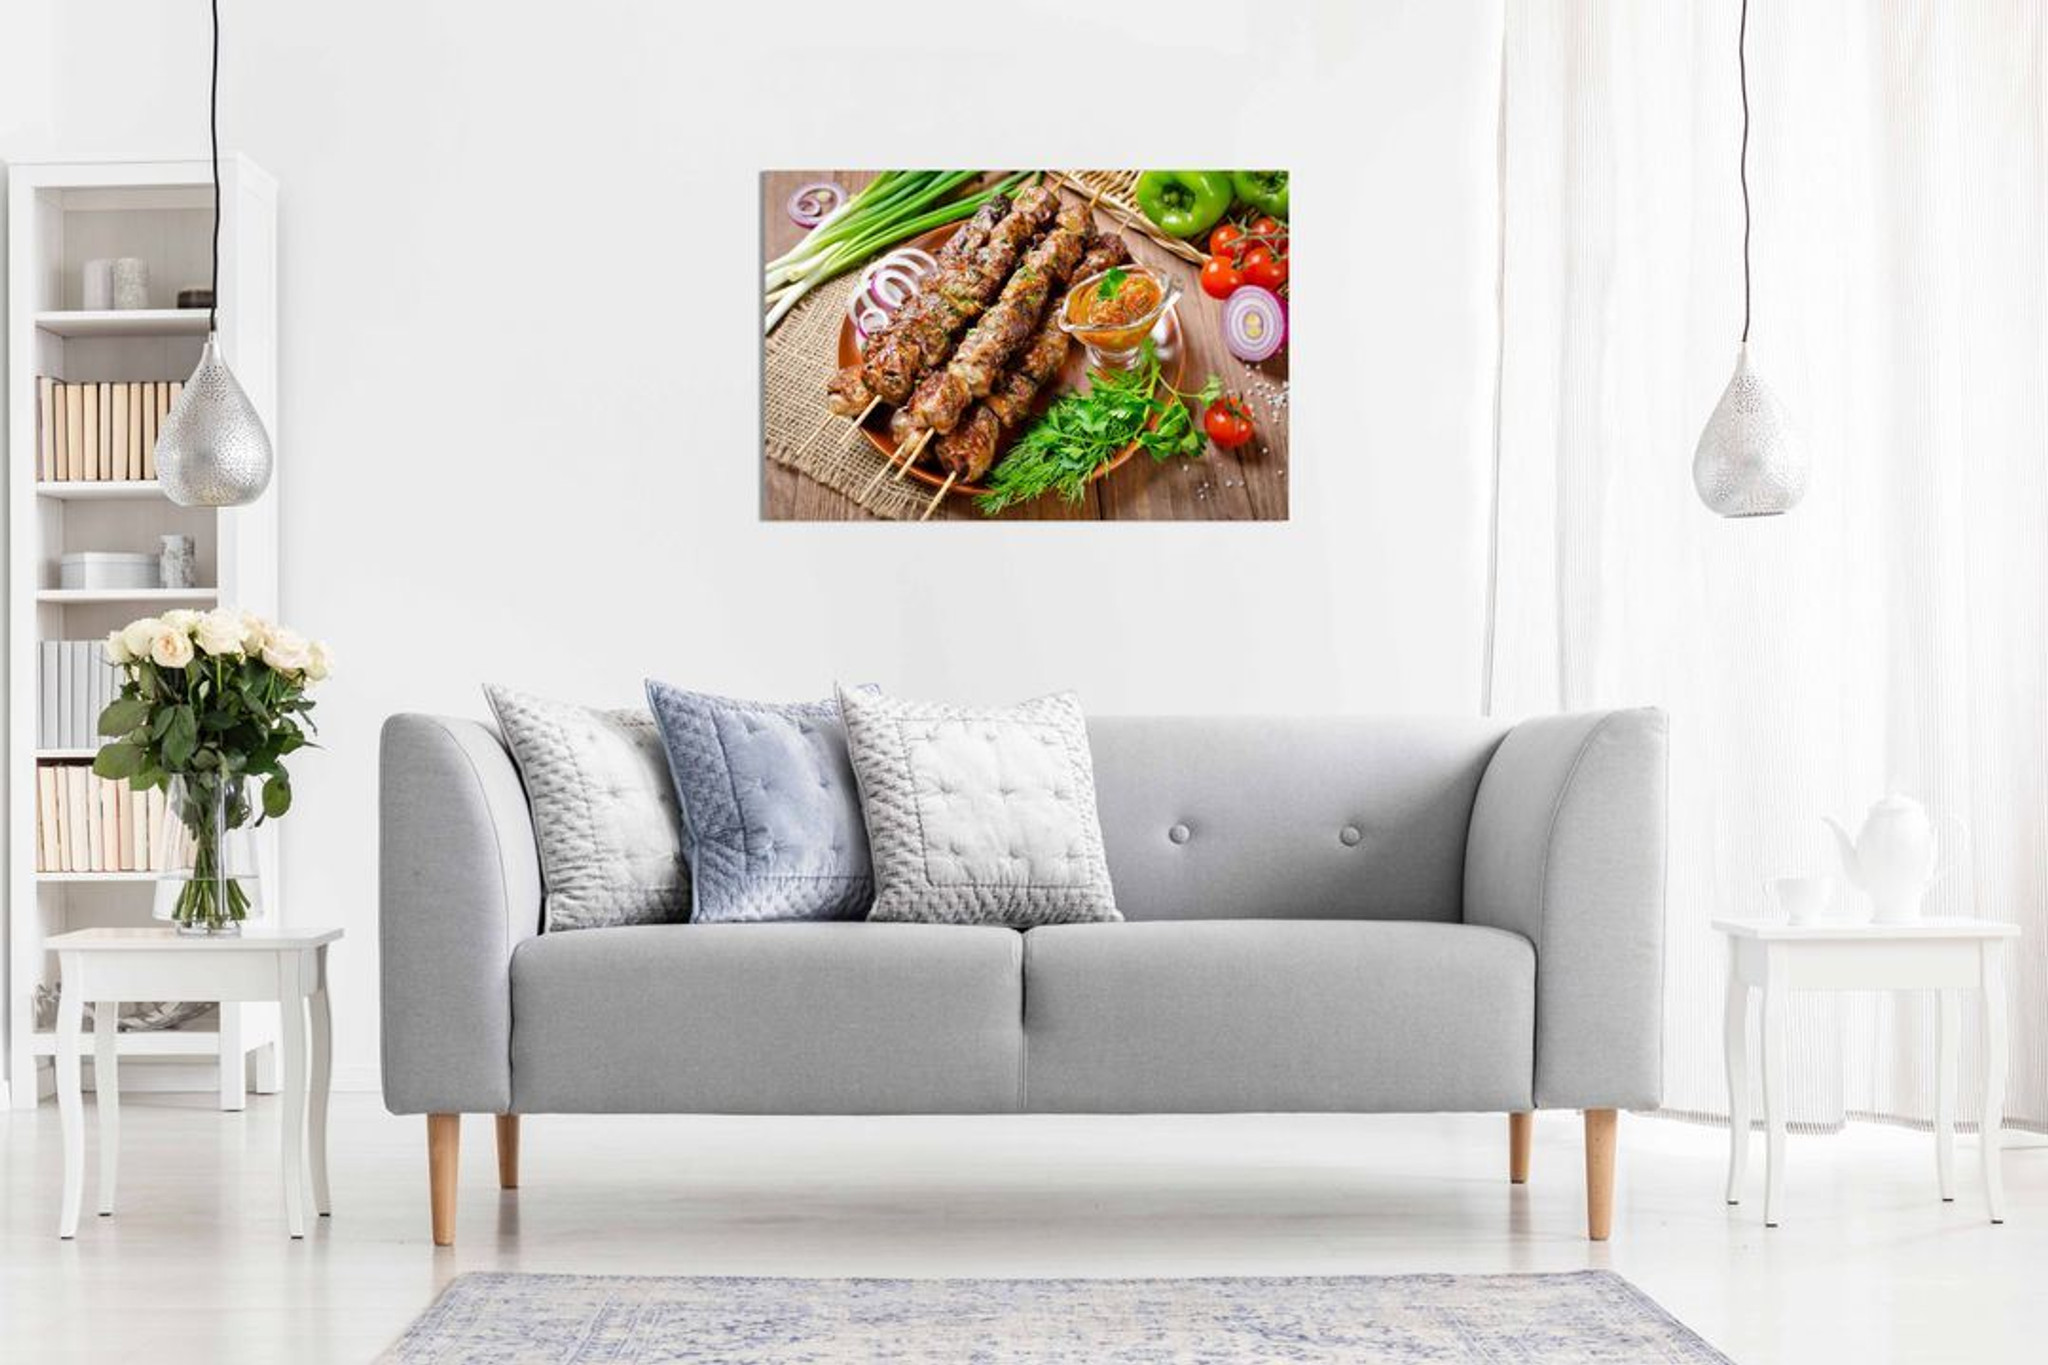 Donor Kebab Grill Turkish Restaurant Decor Kabob Food Canvas Wall Art Picture Print Home Decor